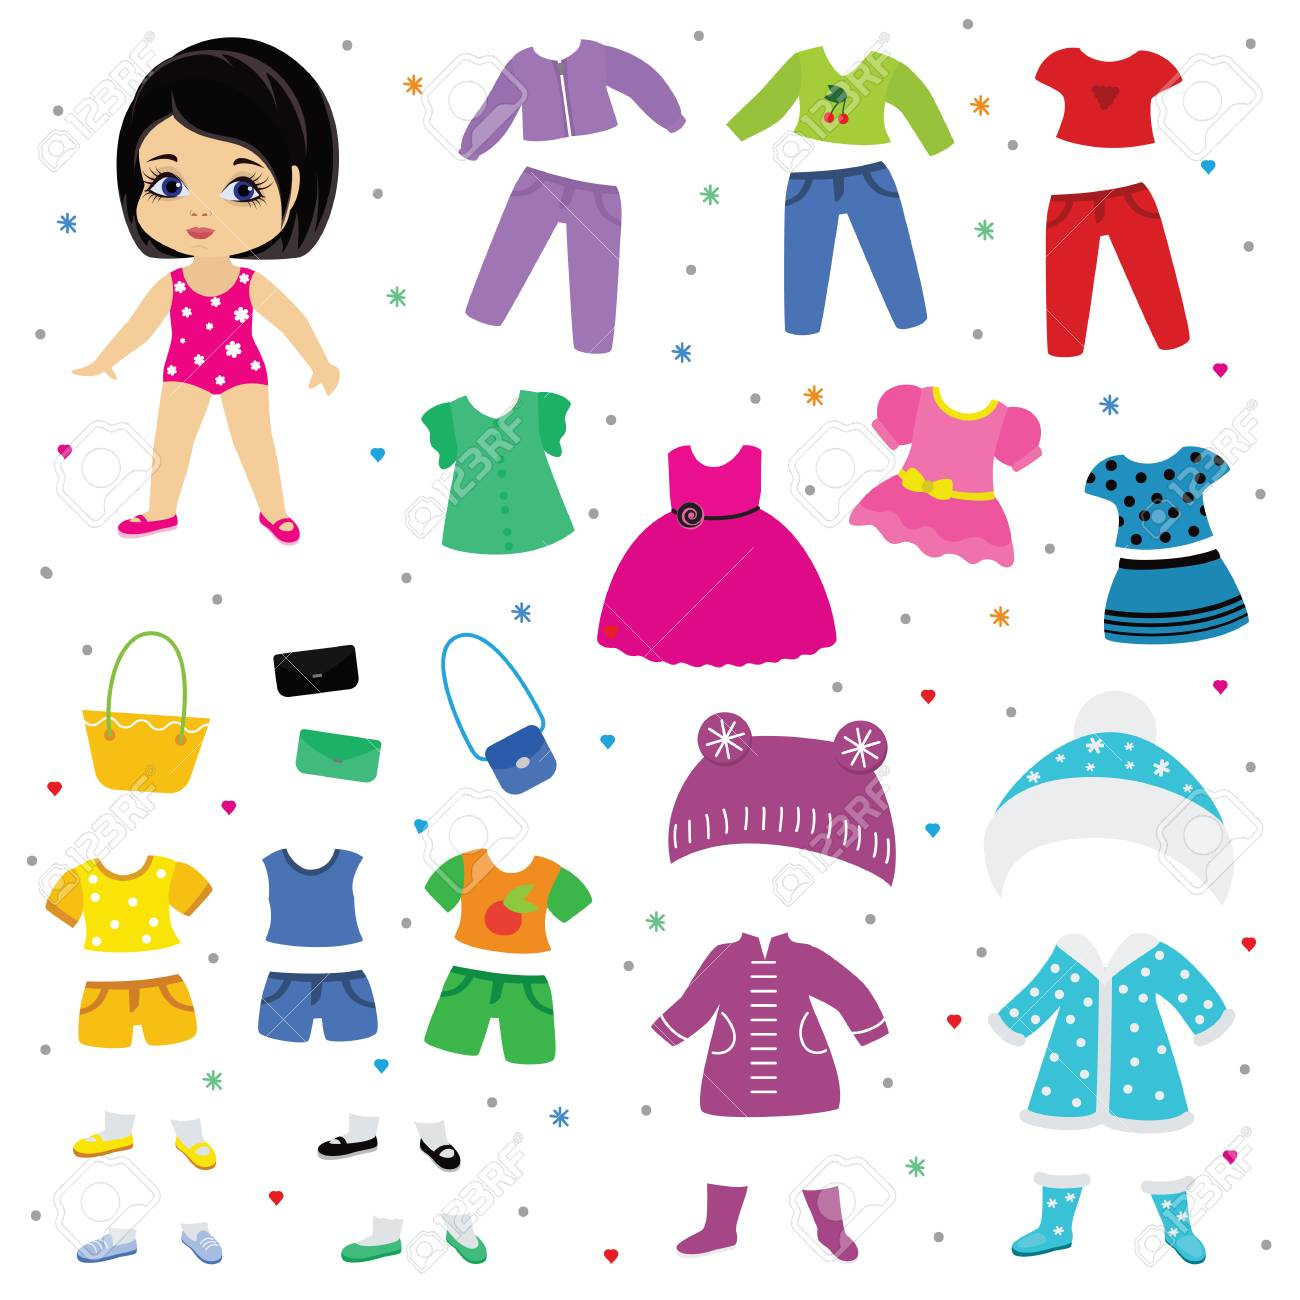 Paper doll vector dress up or clothing beautiful girl with fashion pants dresses or shoes illustration girlie set of female clothes for cutting hat or coat isolated on white background - 102864304